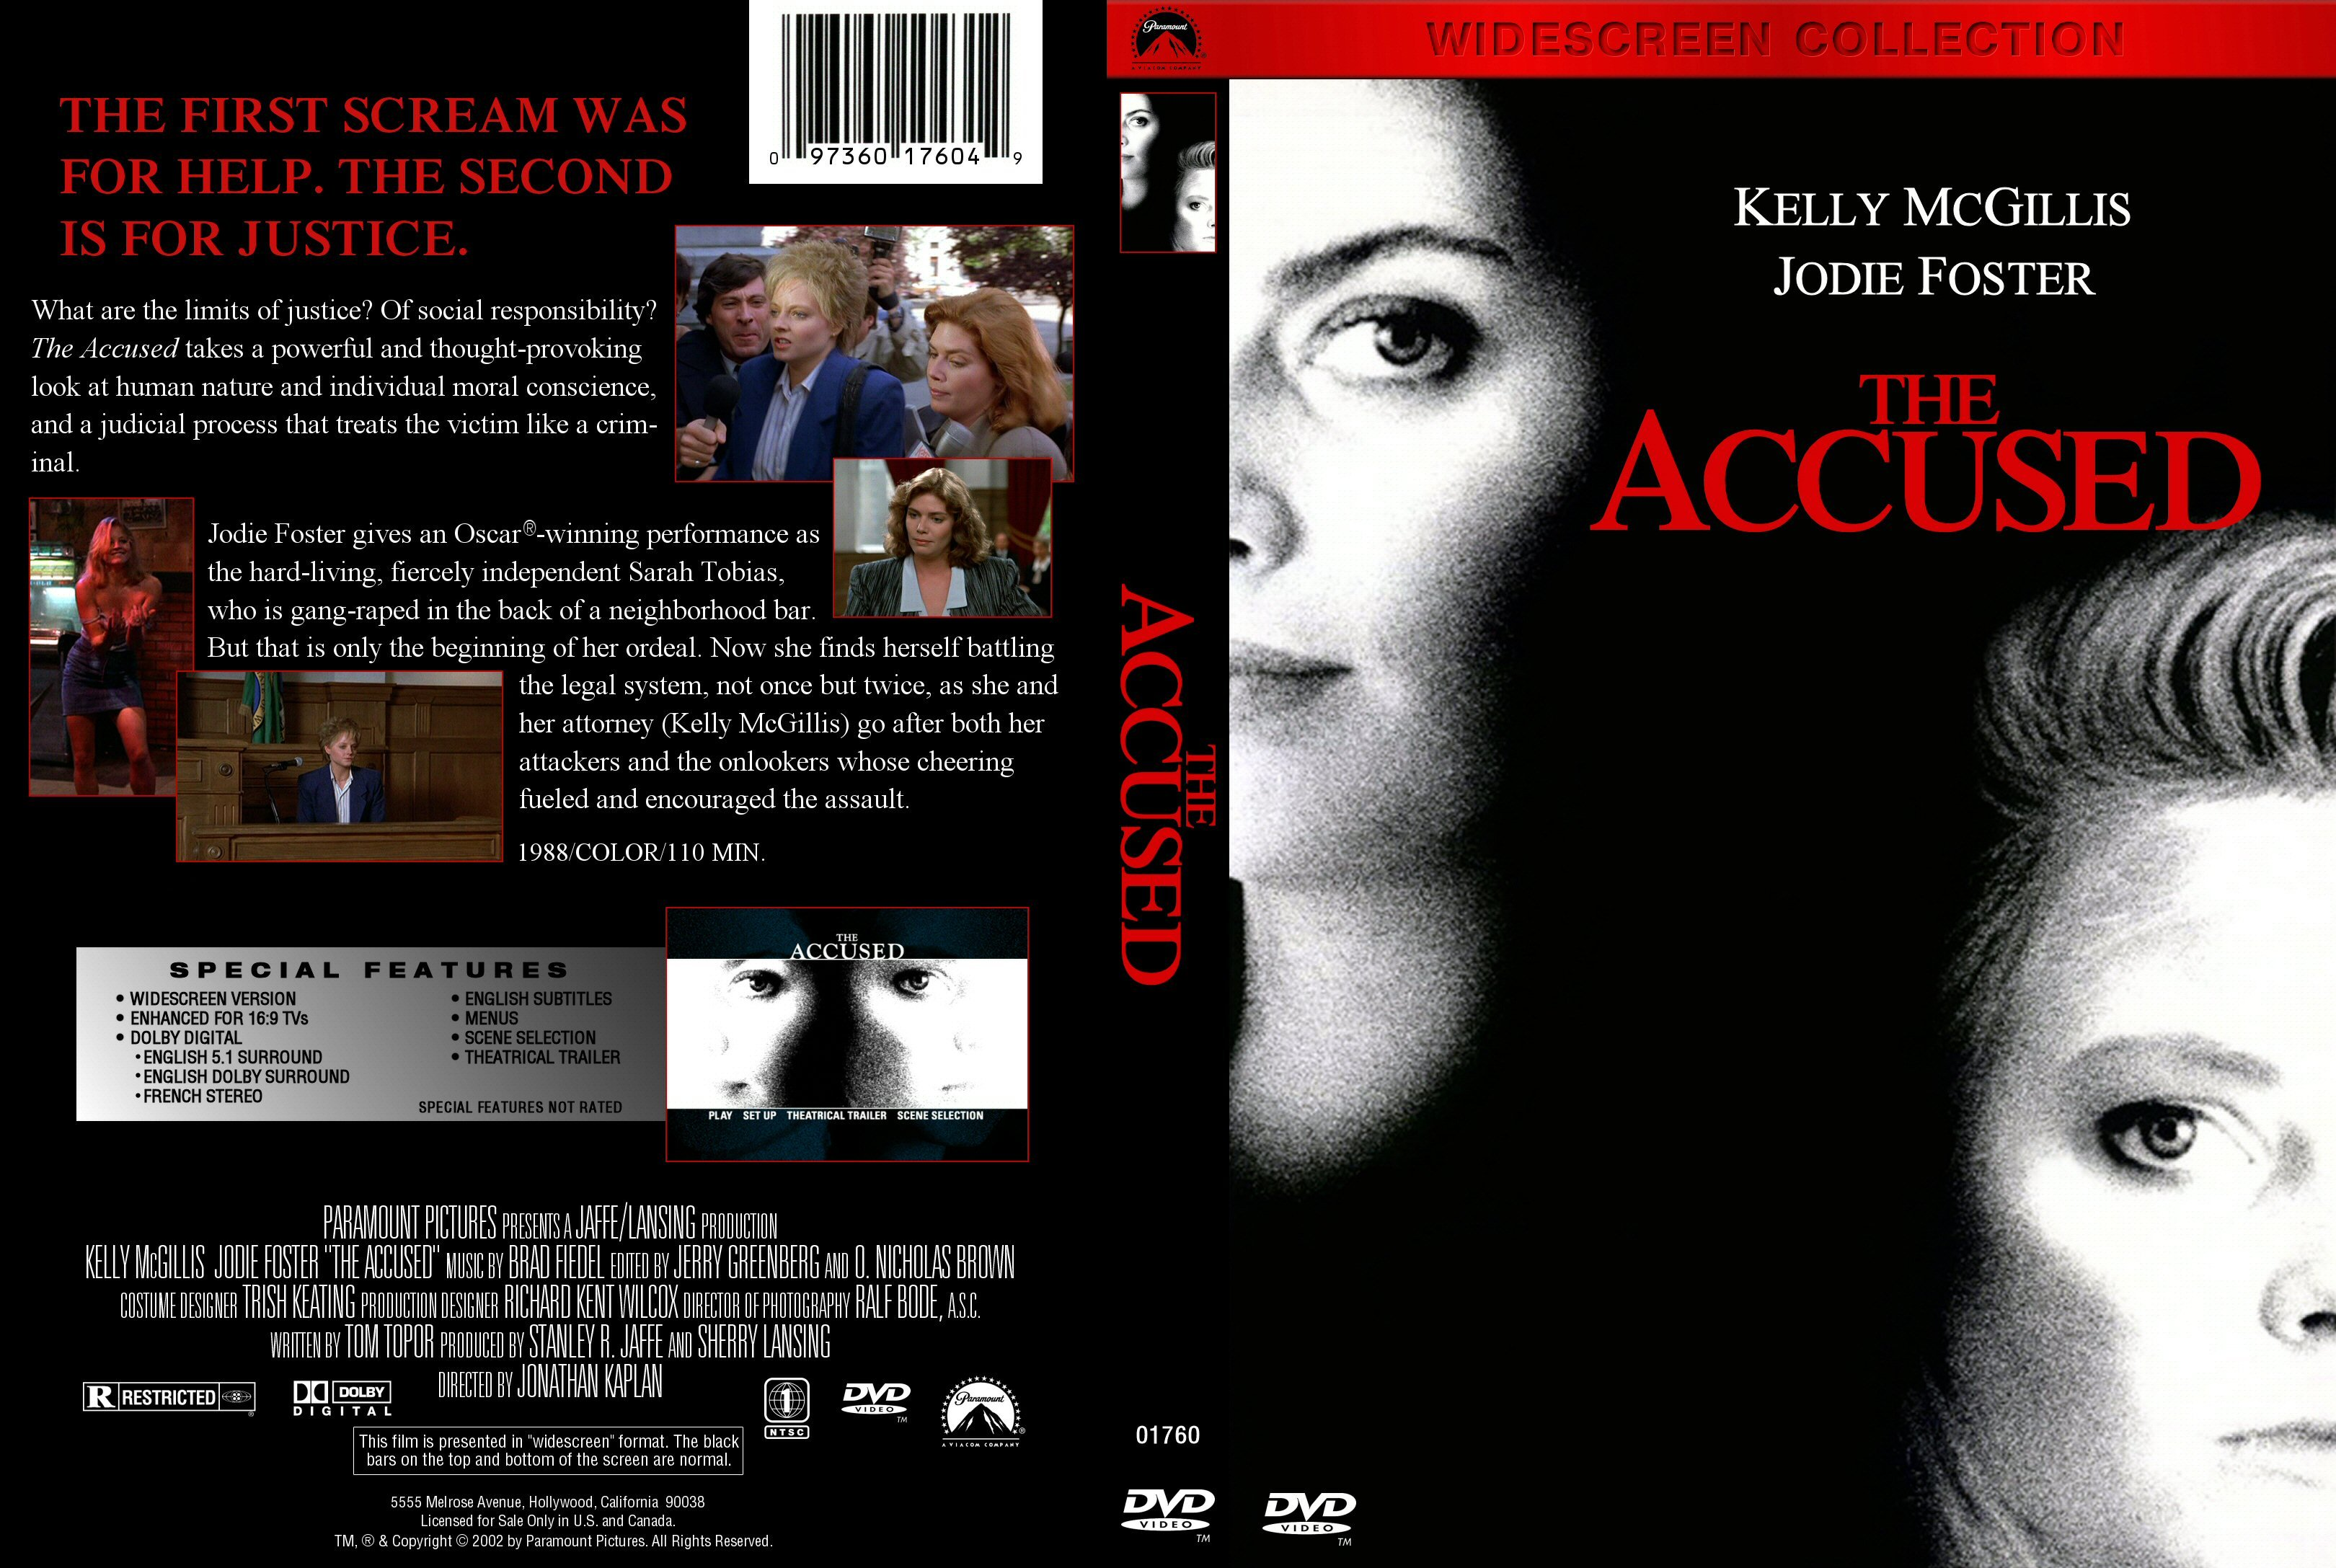 accused at poster accused images pictures photos in the movie the accused middot size 3240 x 2175 pixels